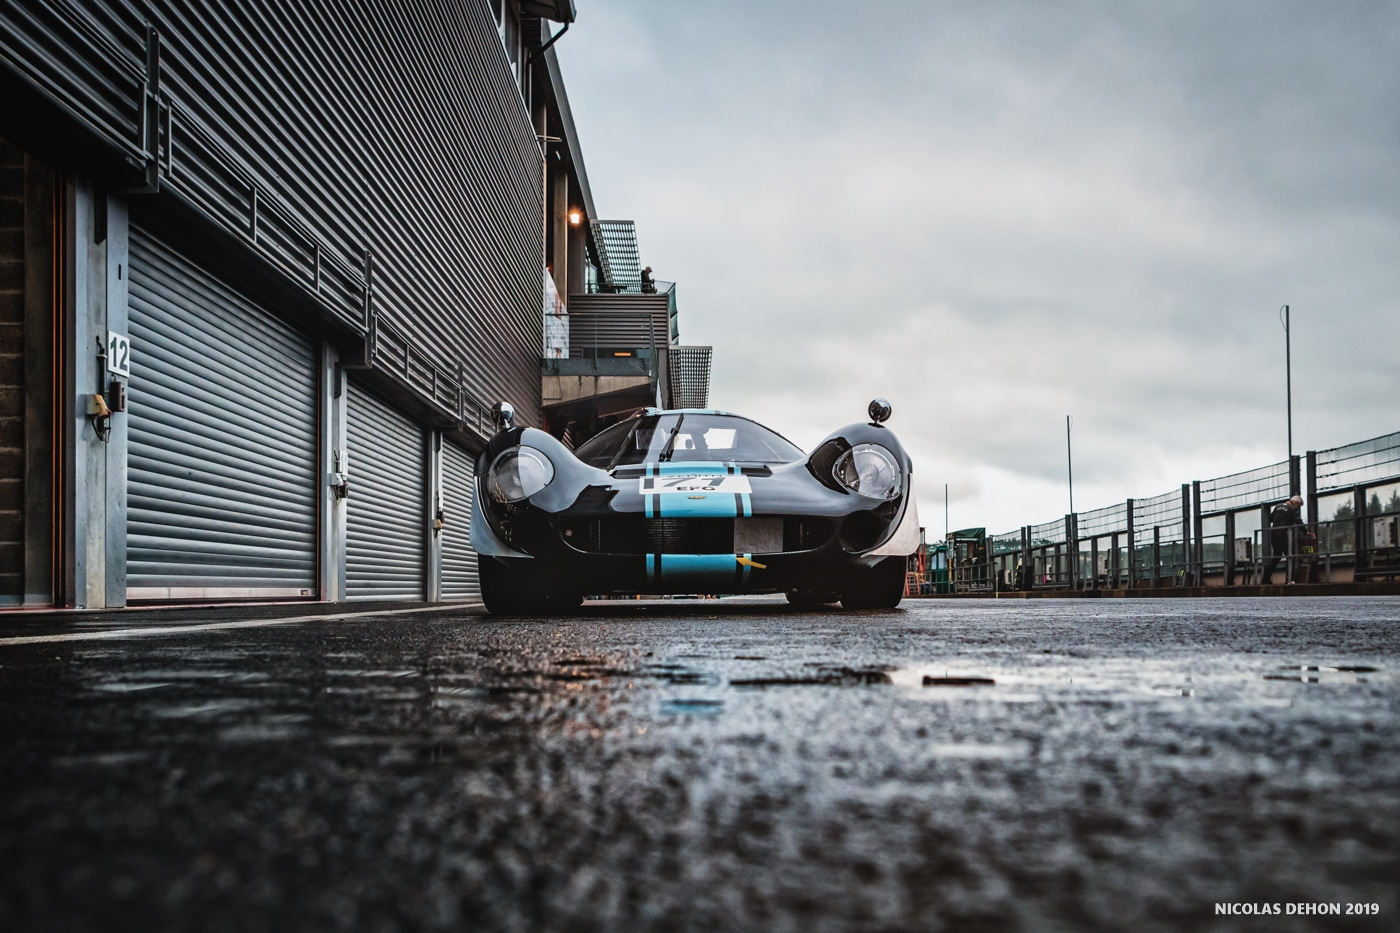 Spa Six Hours 2019 - Lola T70 Mk3 A